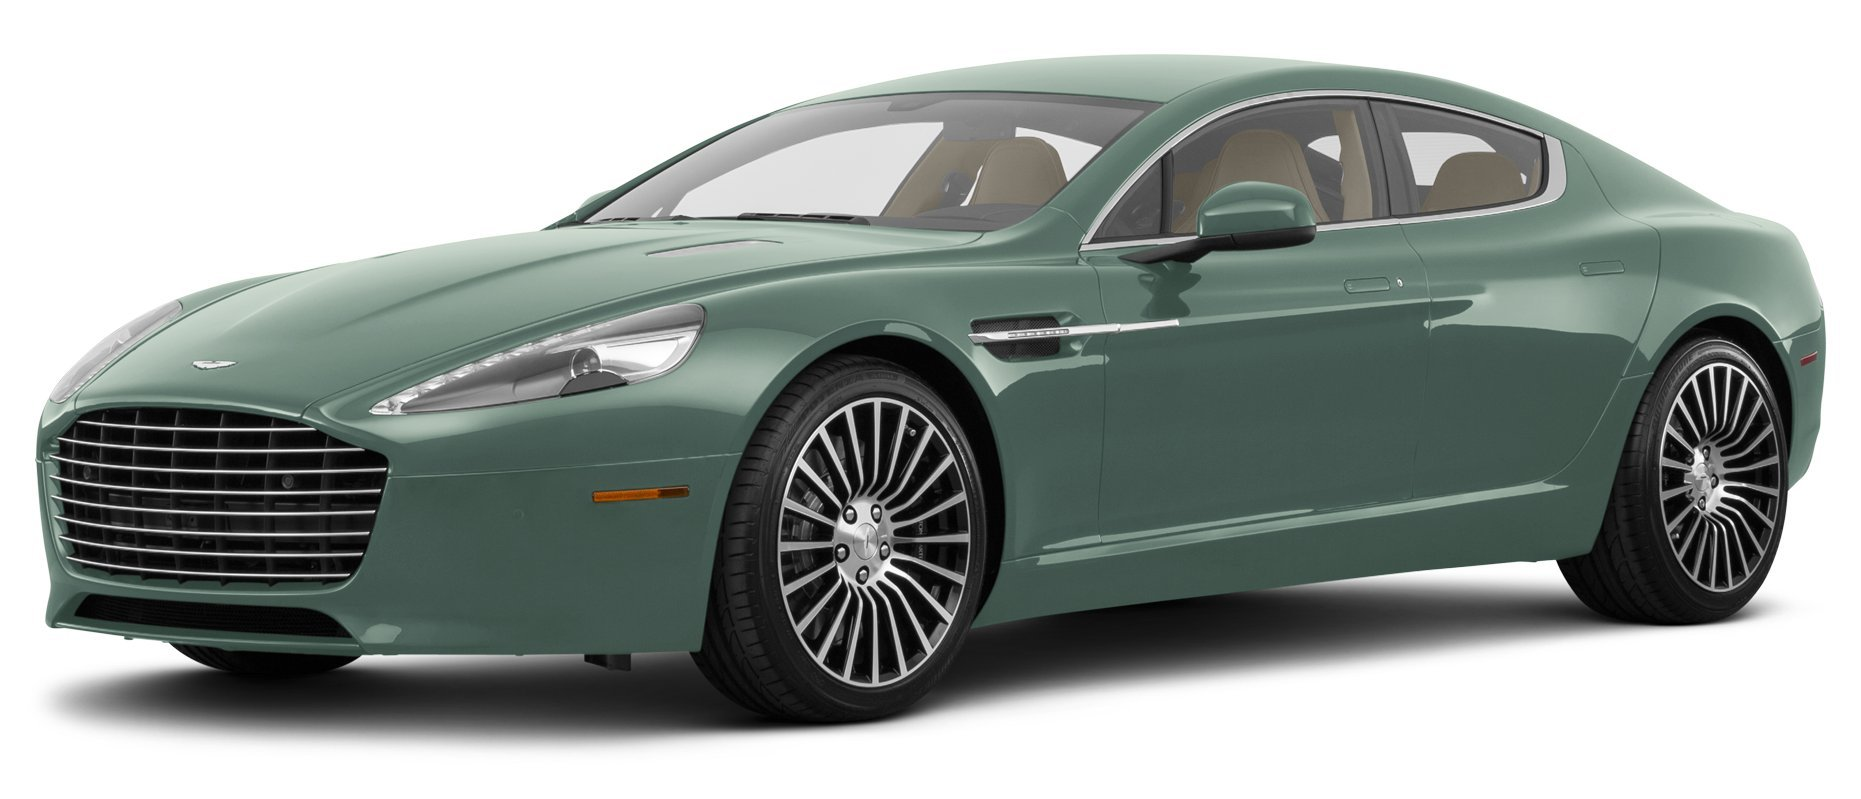 2016 aston martin rapide reviews images and specs vehicles. Black Bedroom Furniture Sets. Home Design Ideas